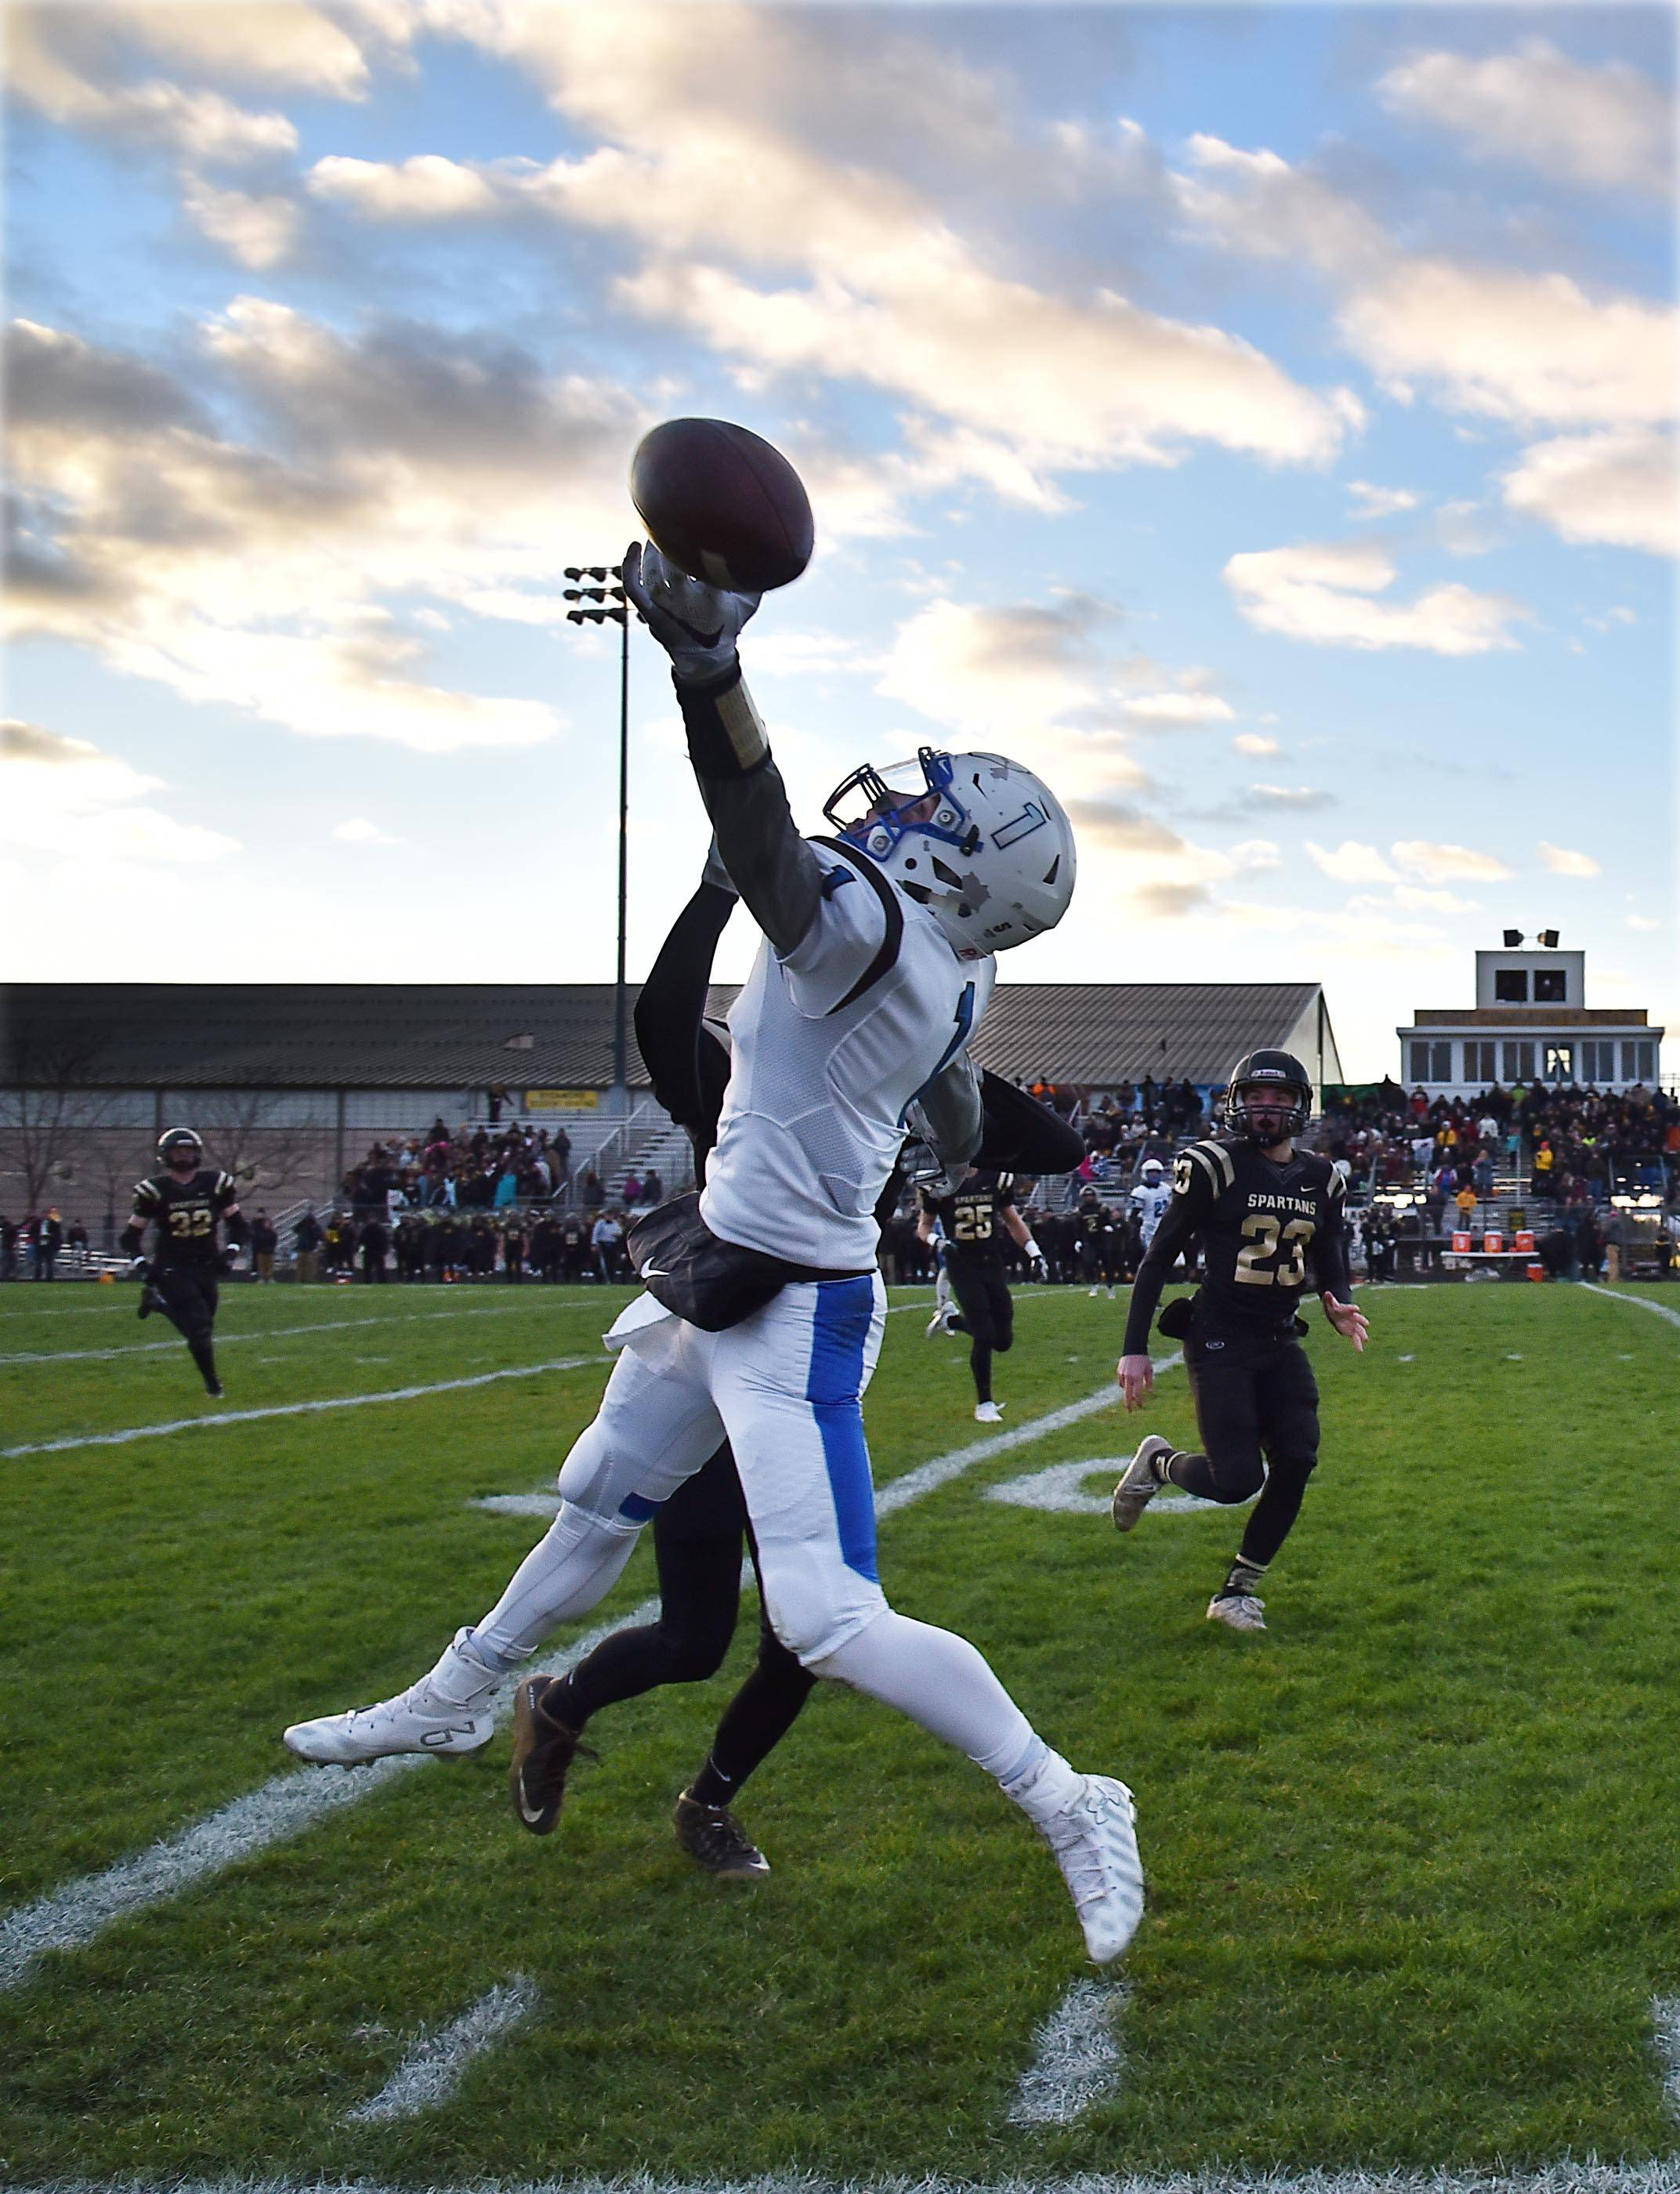 Vernon Hills' Chris Mariella just misses a grab on the sidelines while under pressure from Sycamore's Levee Callahan late in the Class 5A state semifinals. The Cougars meet Peoria in Saturday's 10 a.m. state title game in Champaign.